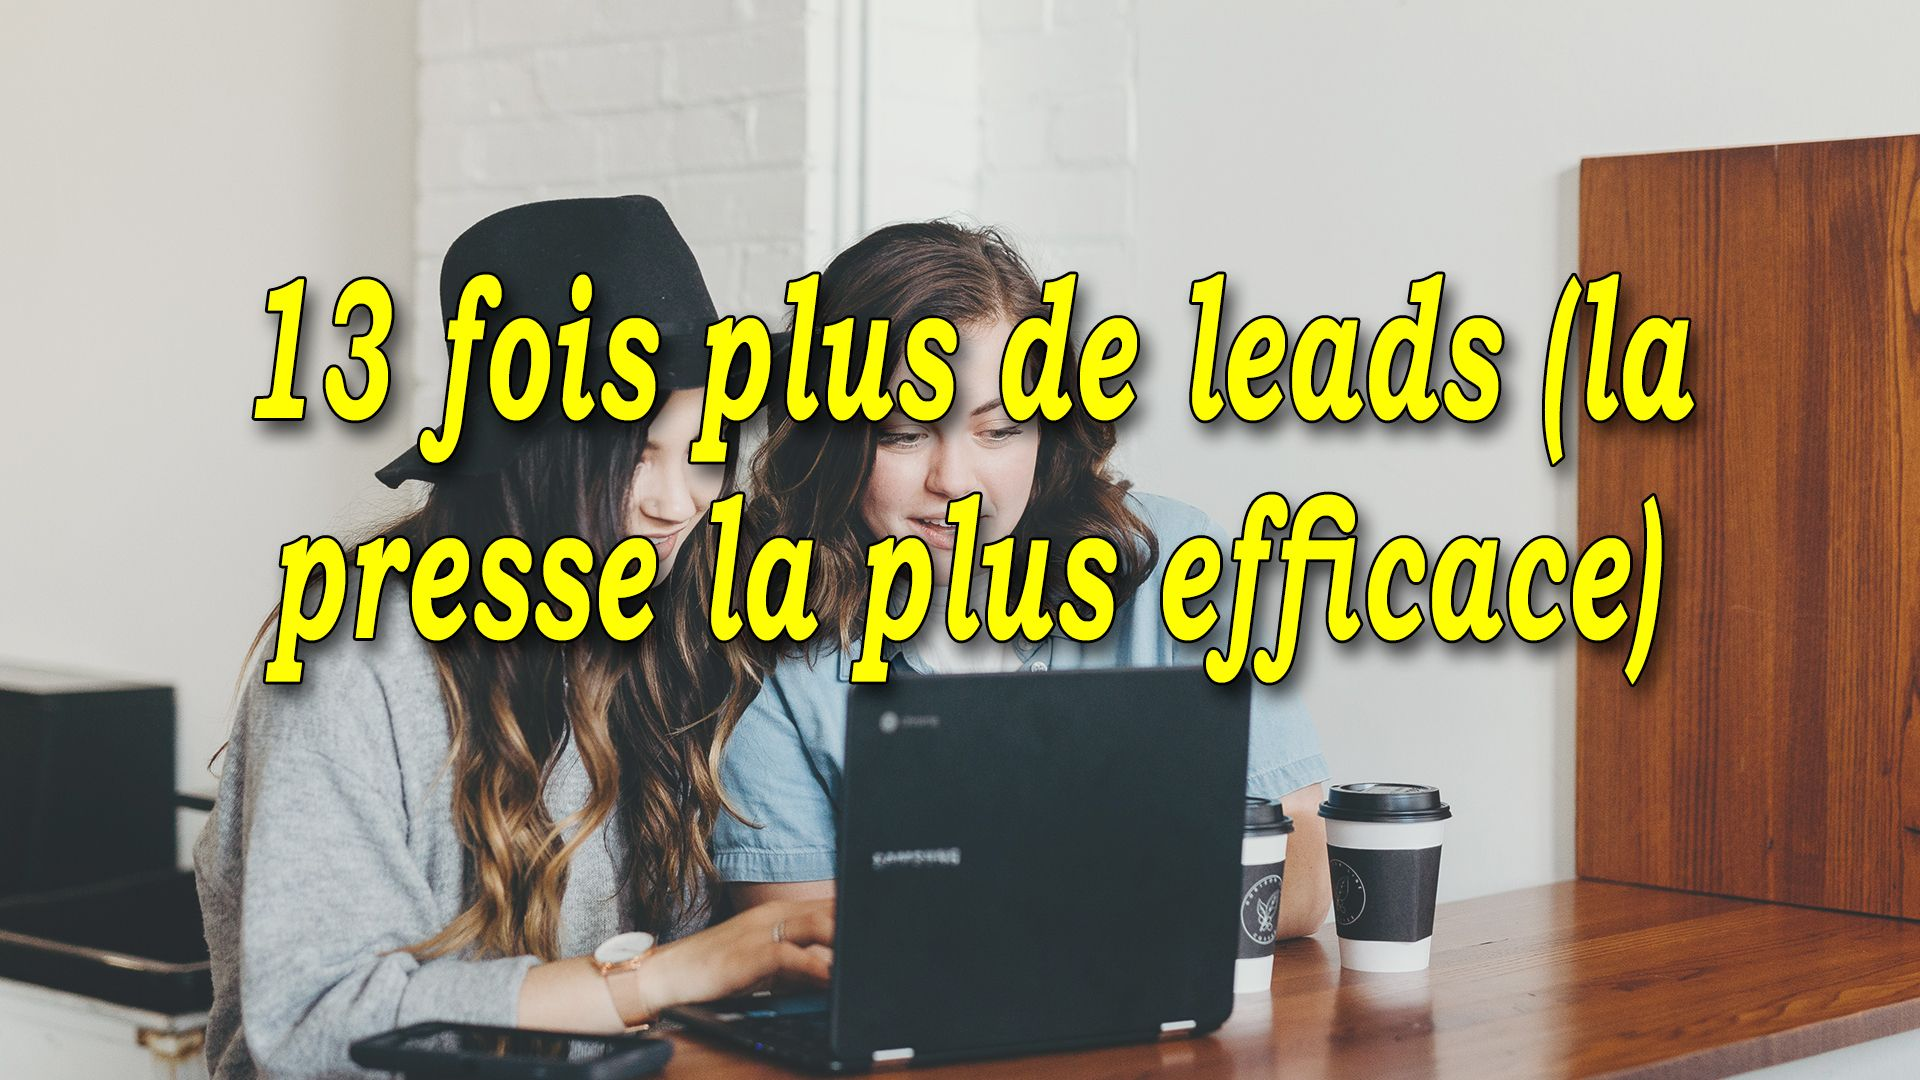 13 fois plus de leads (la presse la plus efficace) #GrowthHacking #WebMarketing #FormationGrowthHacking #CentreDeFormationFrance #TunnelAARRR #AARRR #SocialMedia #CommunityManagement #SEO #blogging